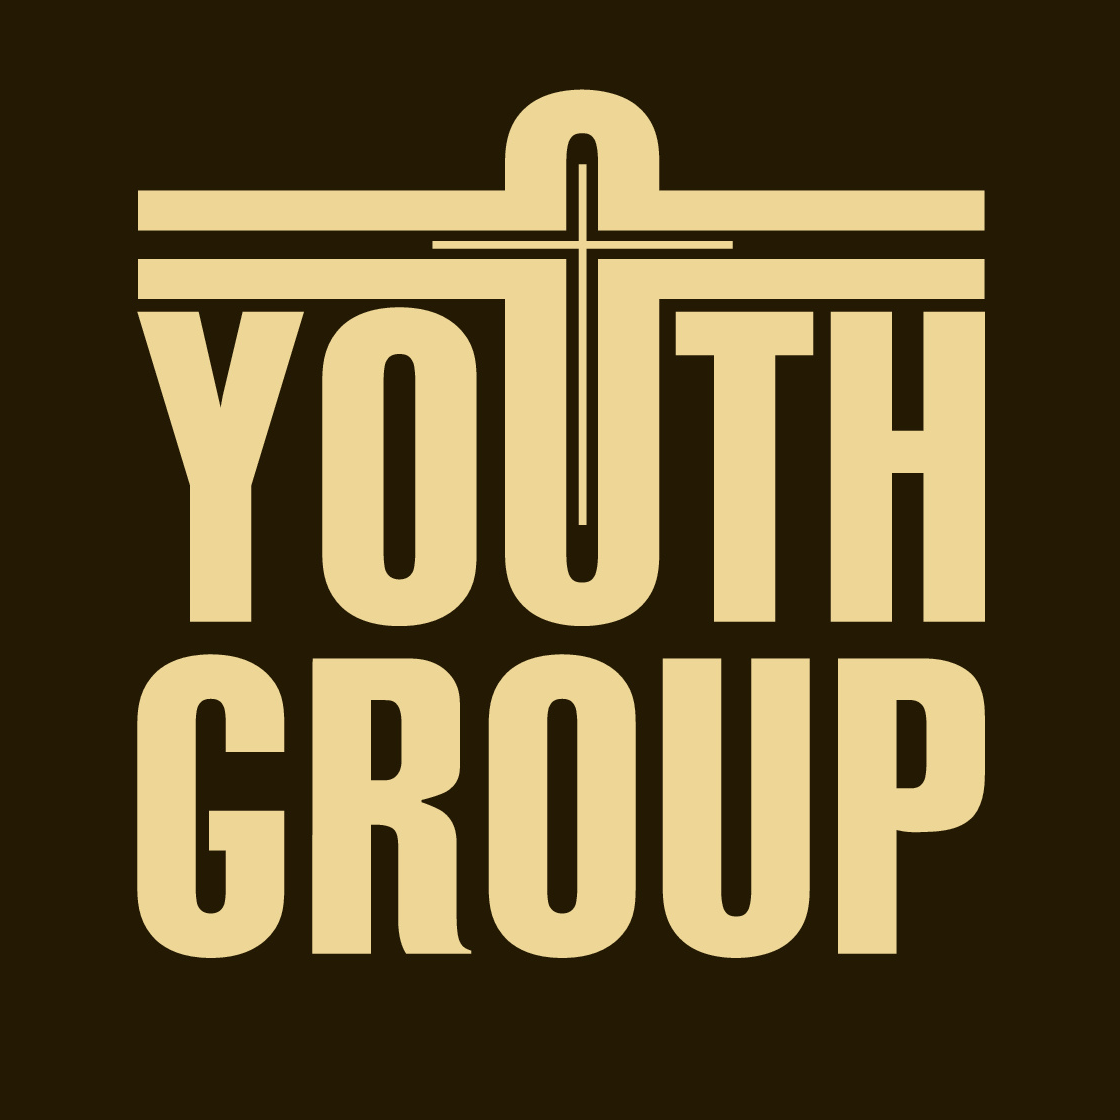 Youth Group website image